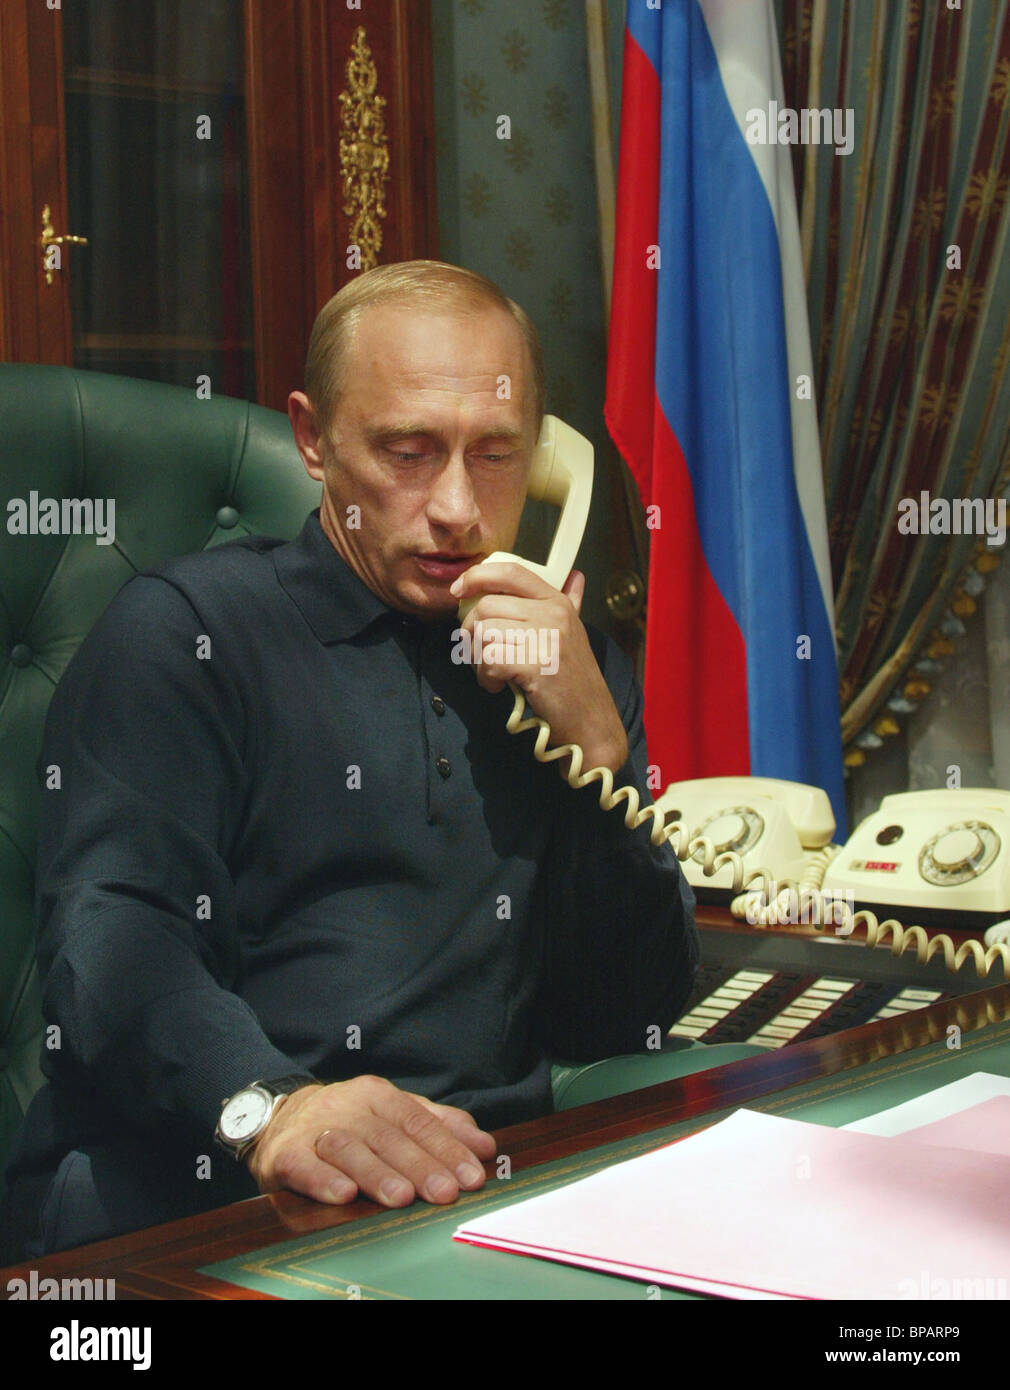 President of Russia Vladimir Putin during his telephone talk with President of the USA - Stock Image